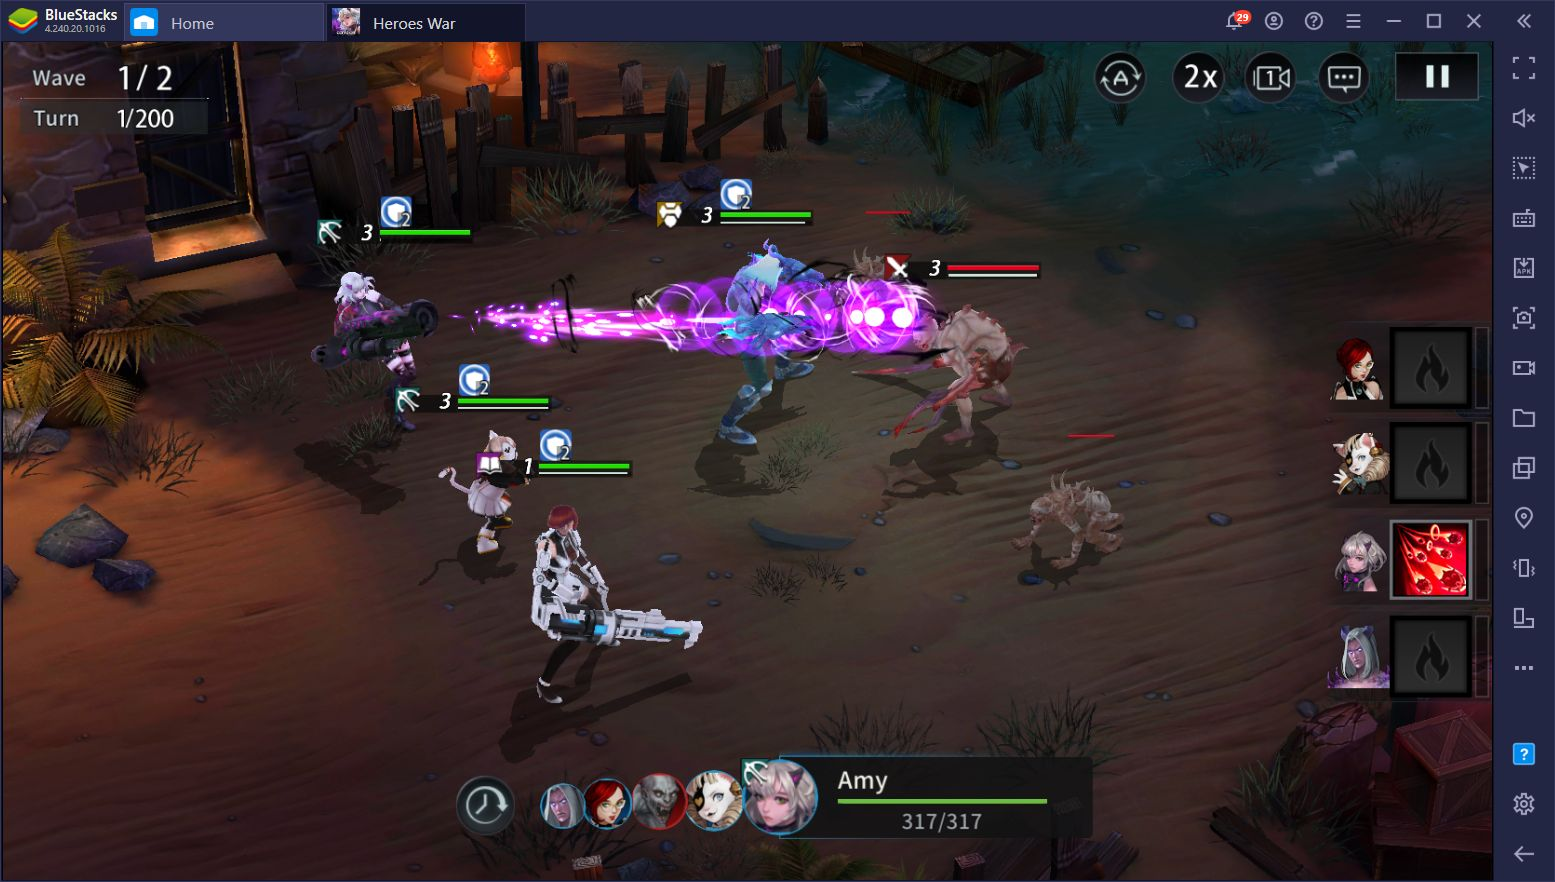 Heroes War: Counterattack on PC – How to Play Com2Us' Latest Strategy RPG on Your Computer